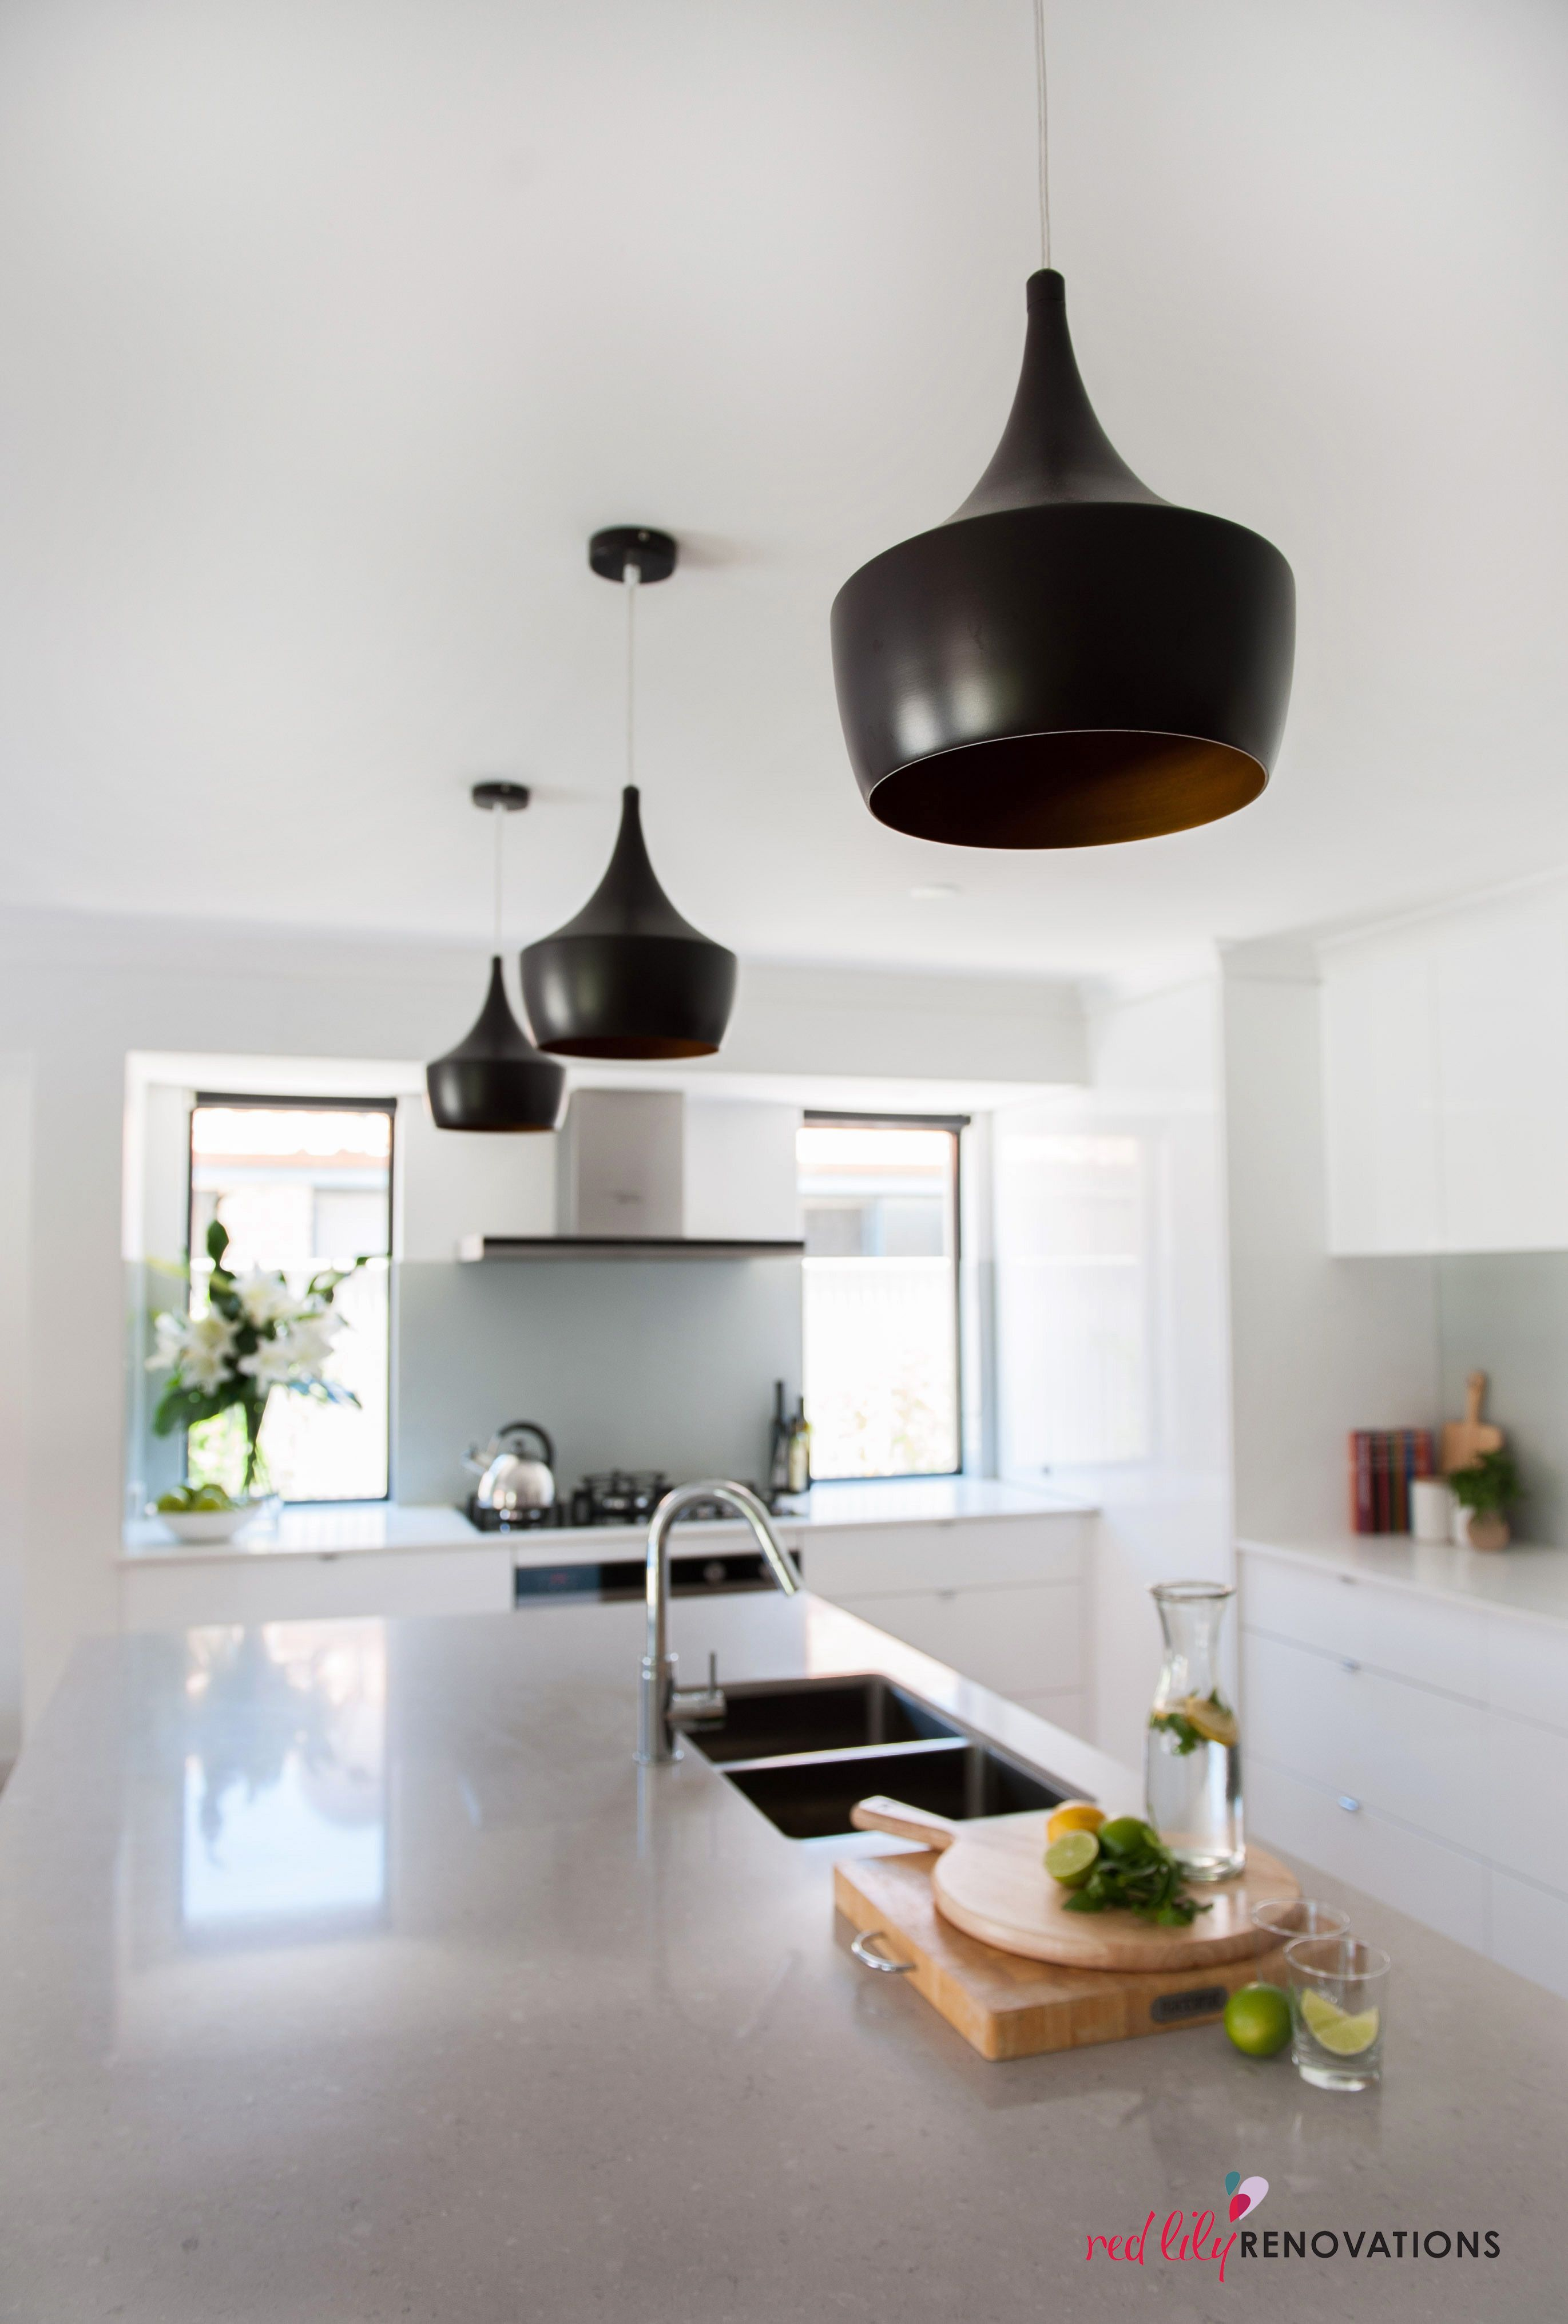 Beacon Pendant Lights These Black Feature Lights Are Gorgeous In This Concrete